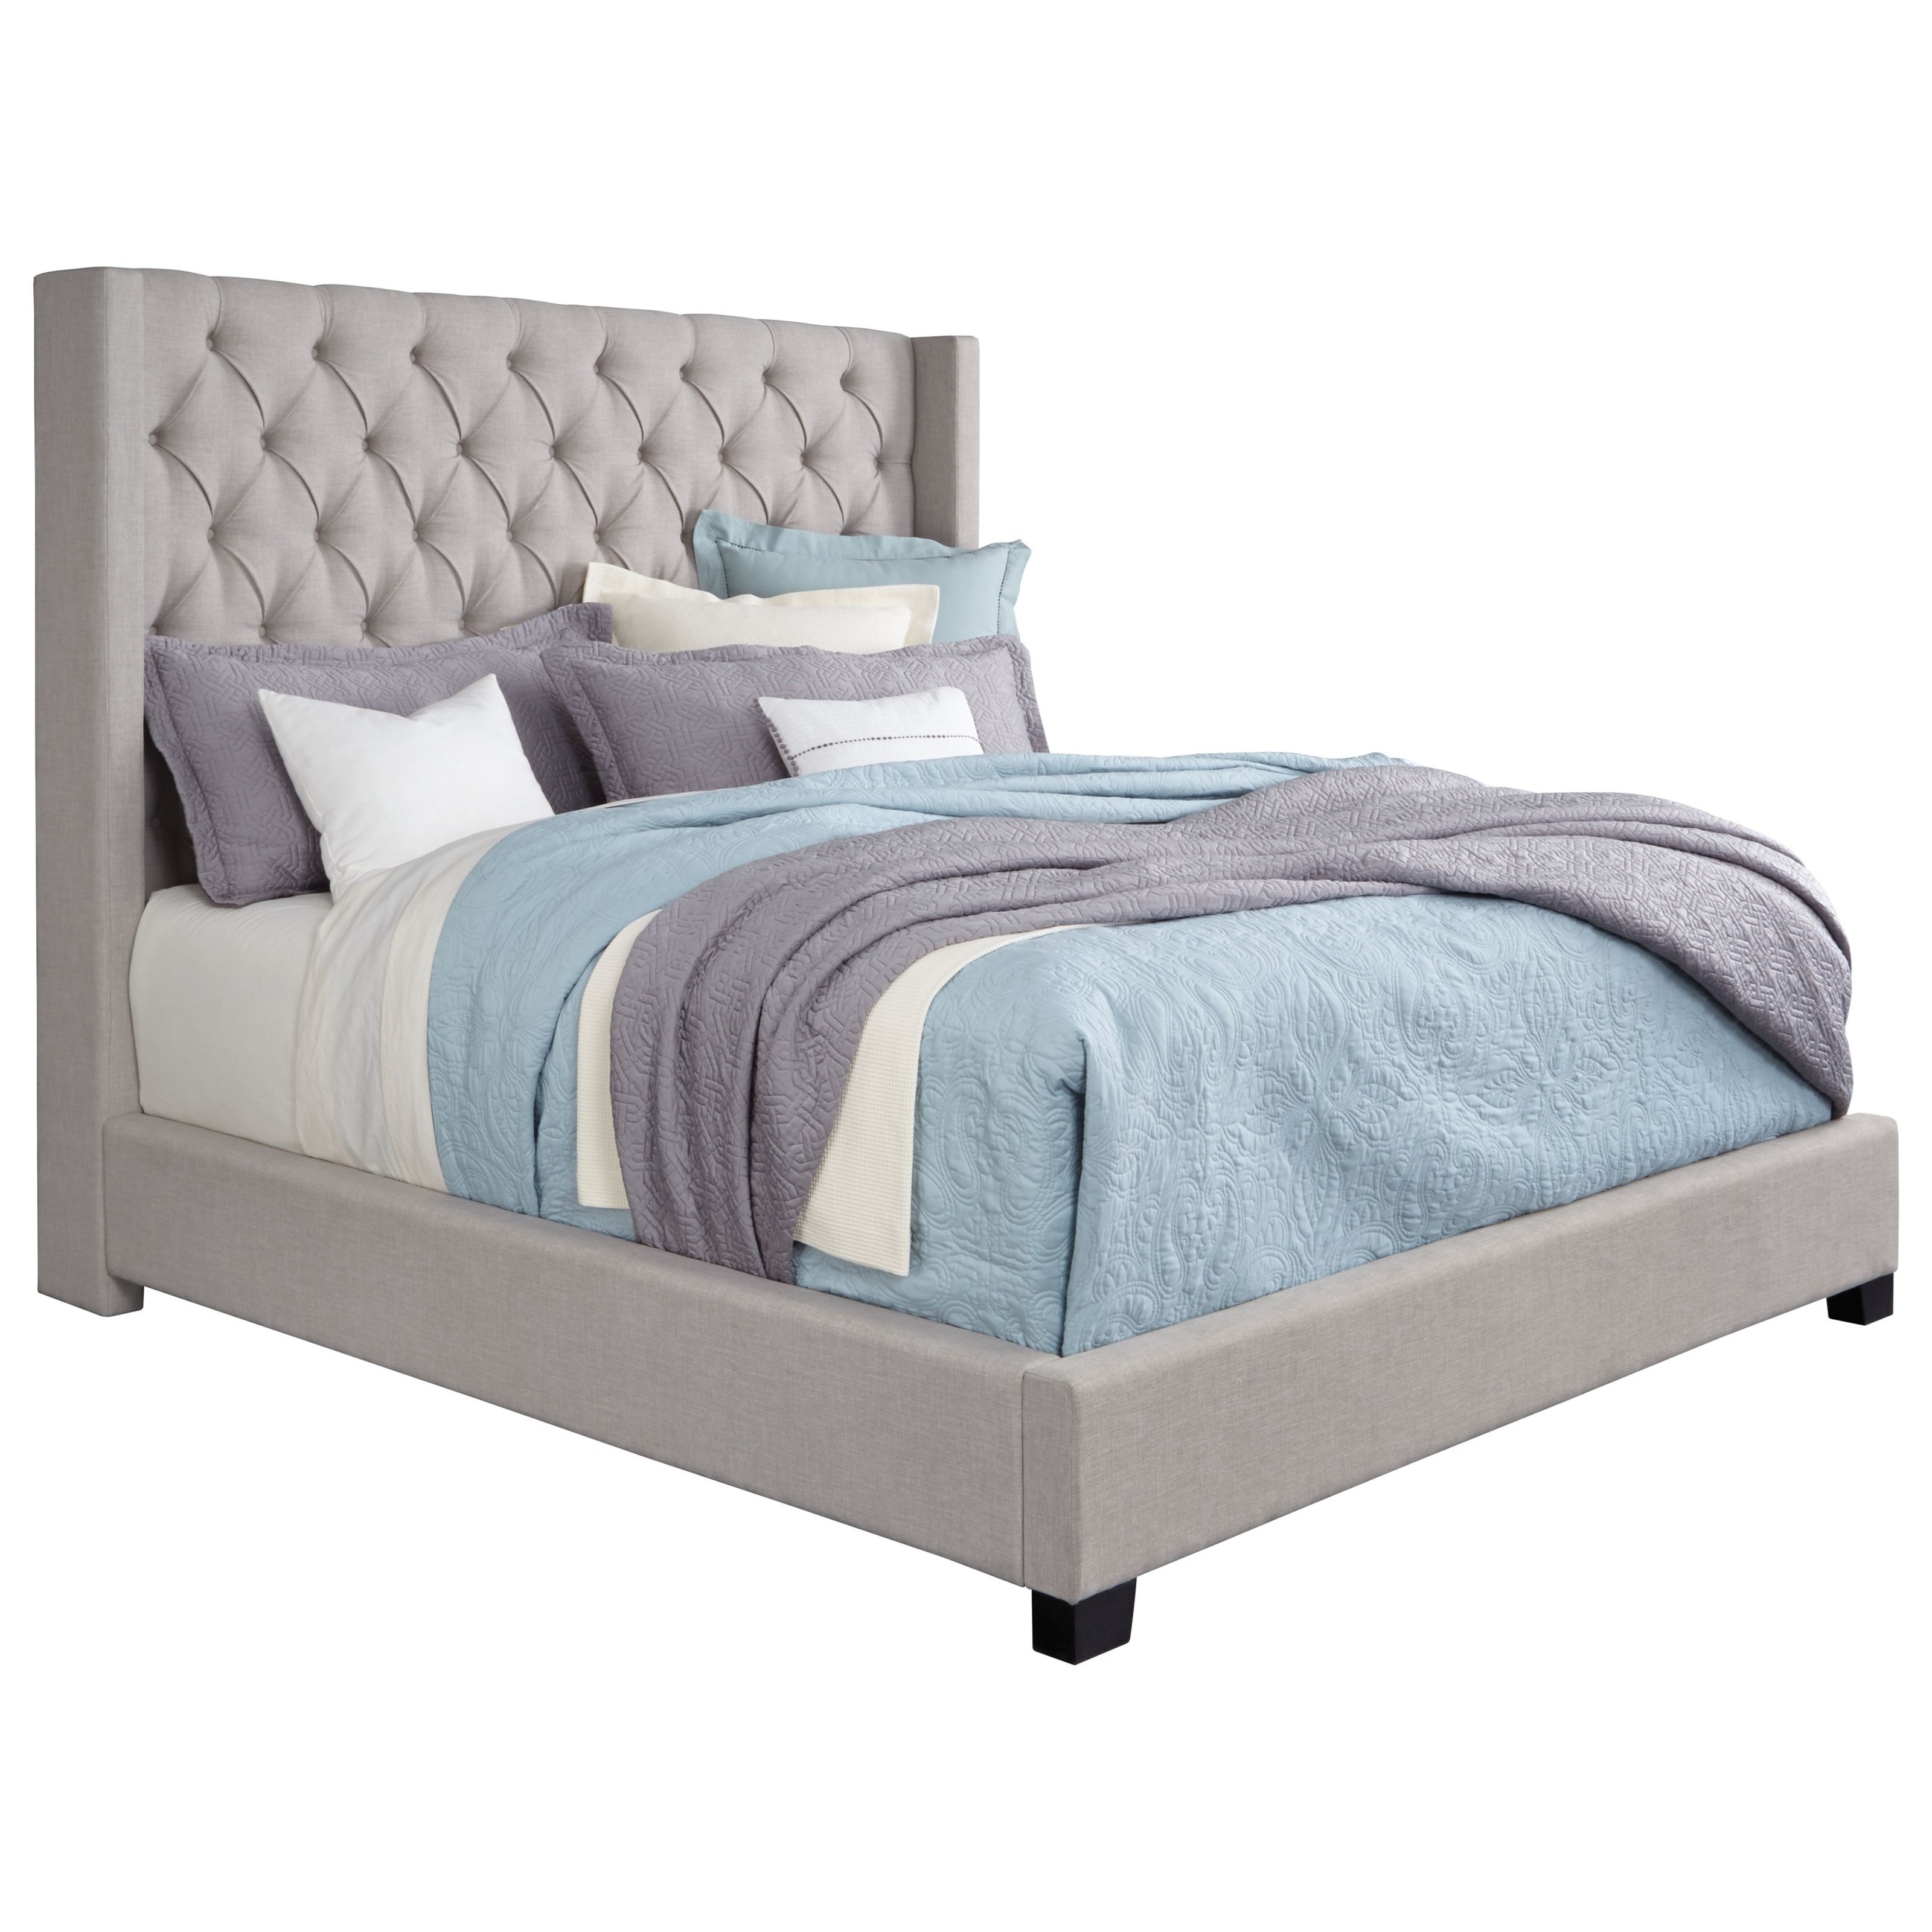 sku also temple following webster upholstered is listed the manufacturer under numbers chessell sometimes bed frame